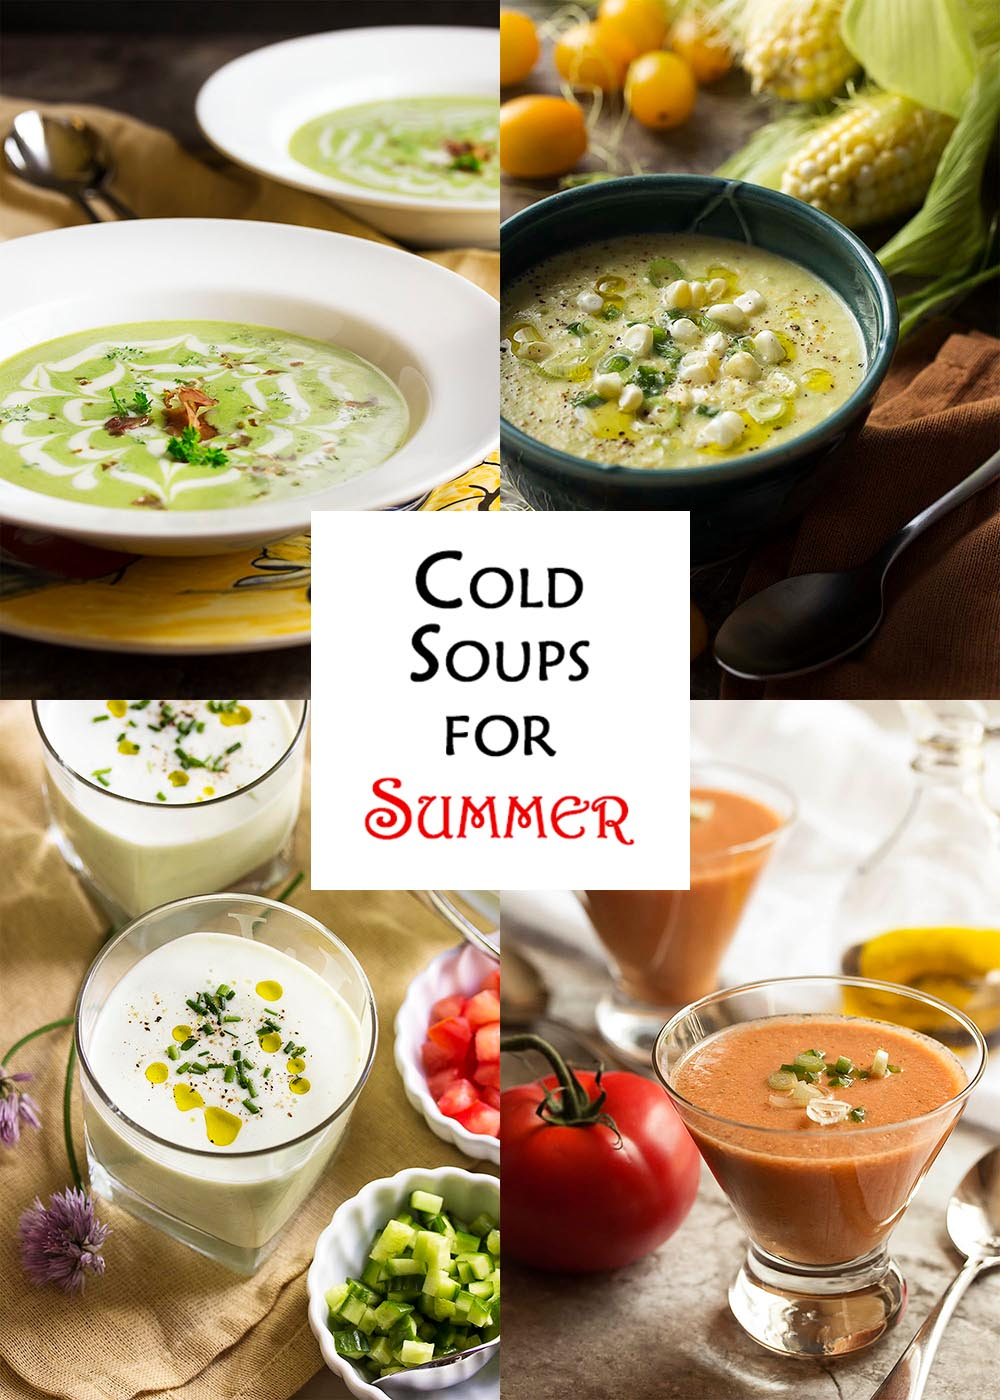 Cold Soups for Summer title card